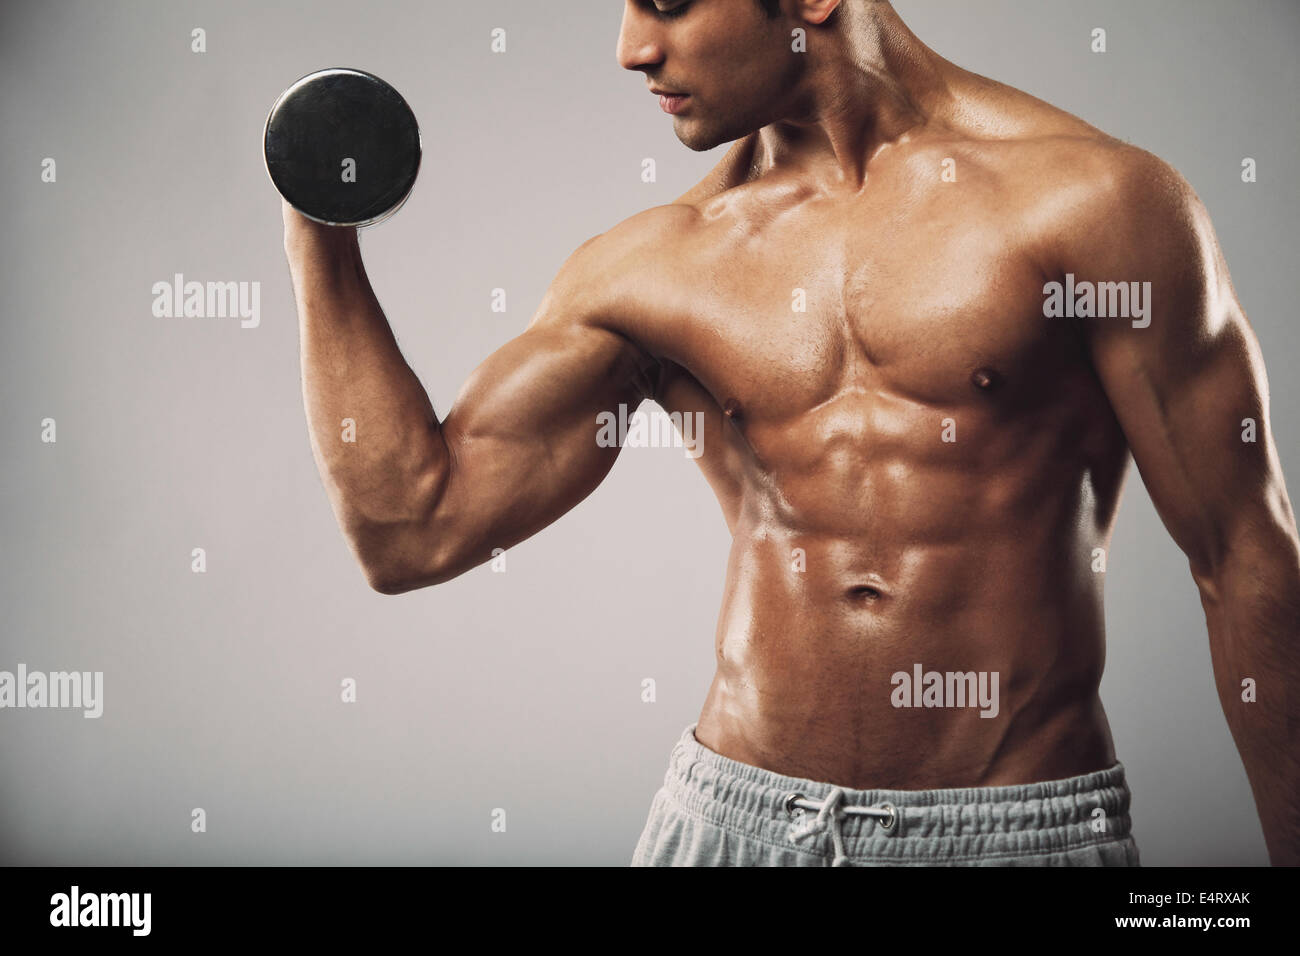 Portrait de jeune homme musclé accomplir un exercice d'haltères pour biceps. Man working out with Photo Stock